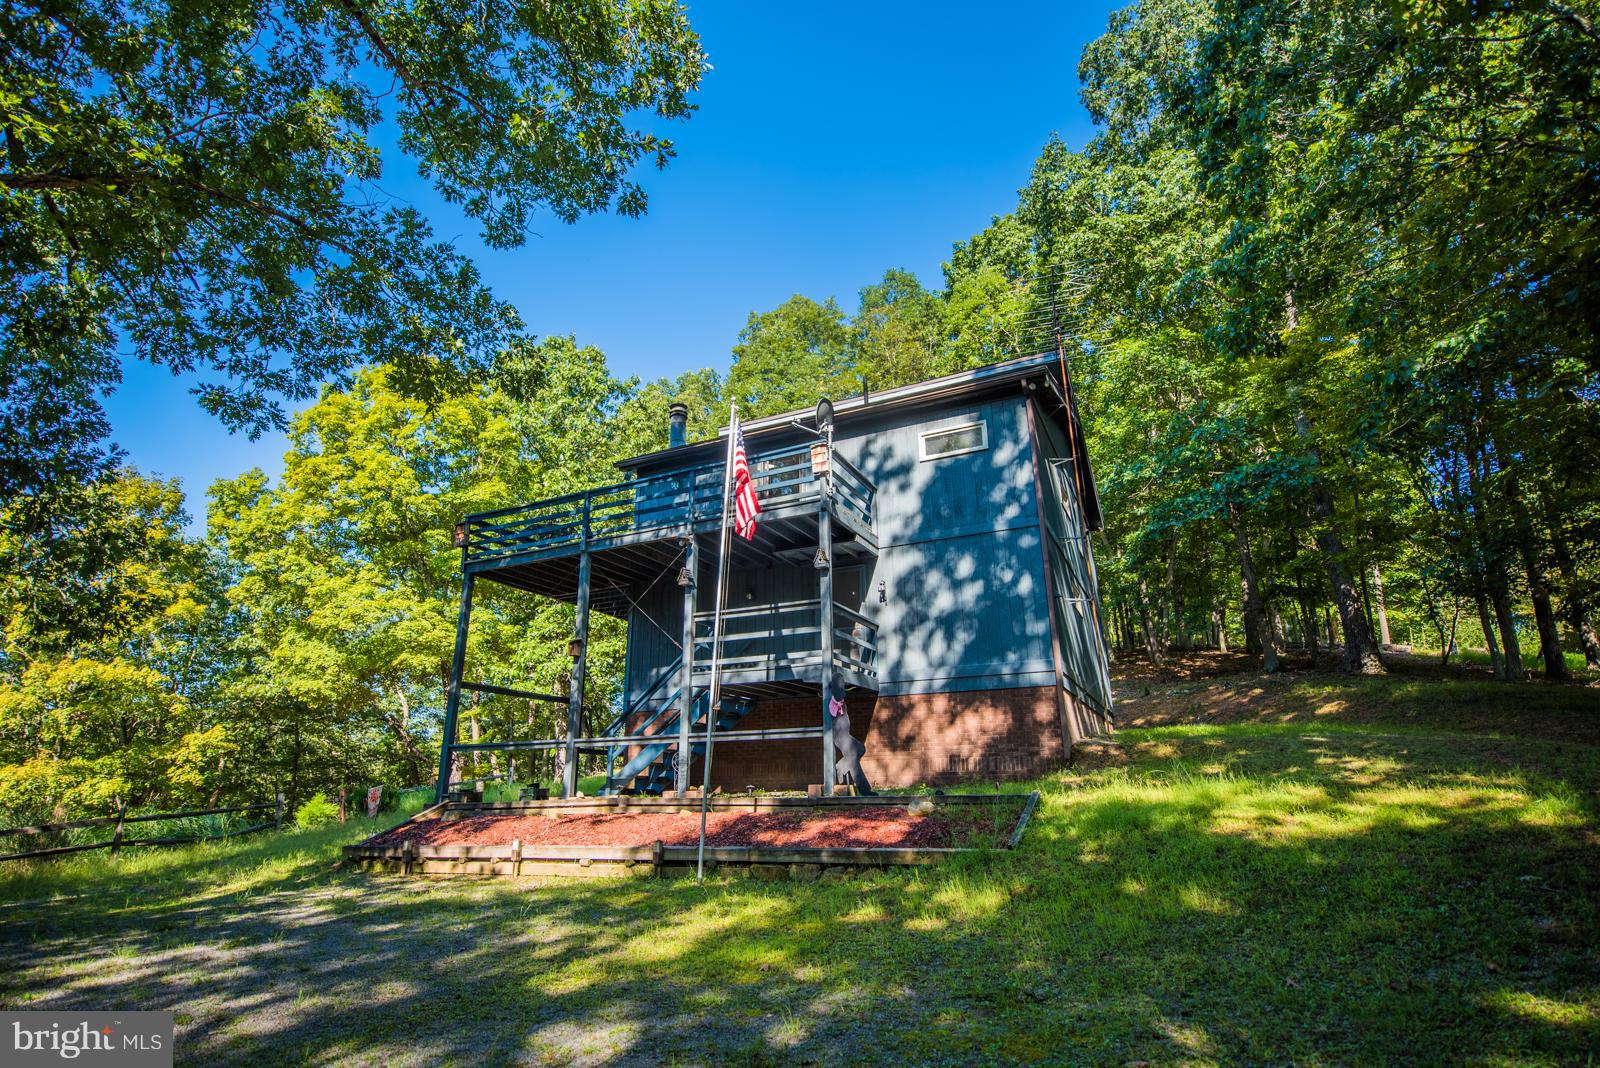 Enjoy the sounds of sights and sounds of nature from the deck of this lovely contemporary home in River Ridge, just 20 minutes to the historic town of Berkeley Springs, WV.  Waterfront on the Cacapon River, community river access and picnic area.  Three bedroom, 2 bath home with large great room, stone corner wood burning fireplace, and plenty of windows for natural light and to enjoy the views.